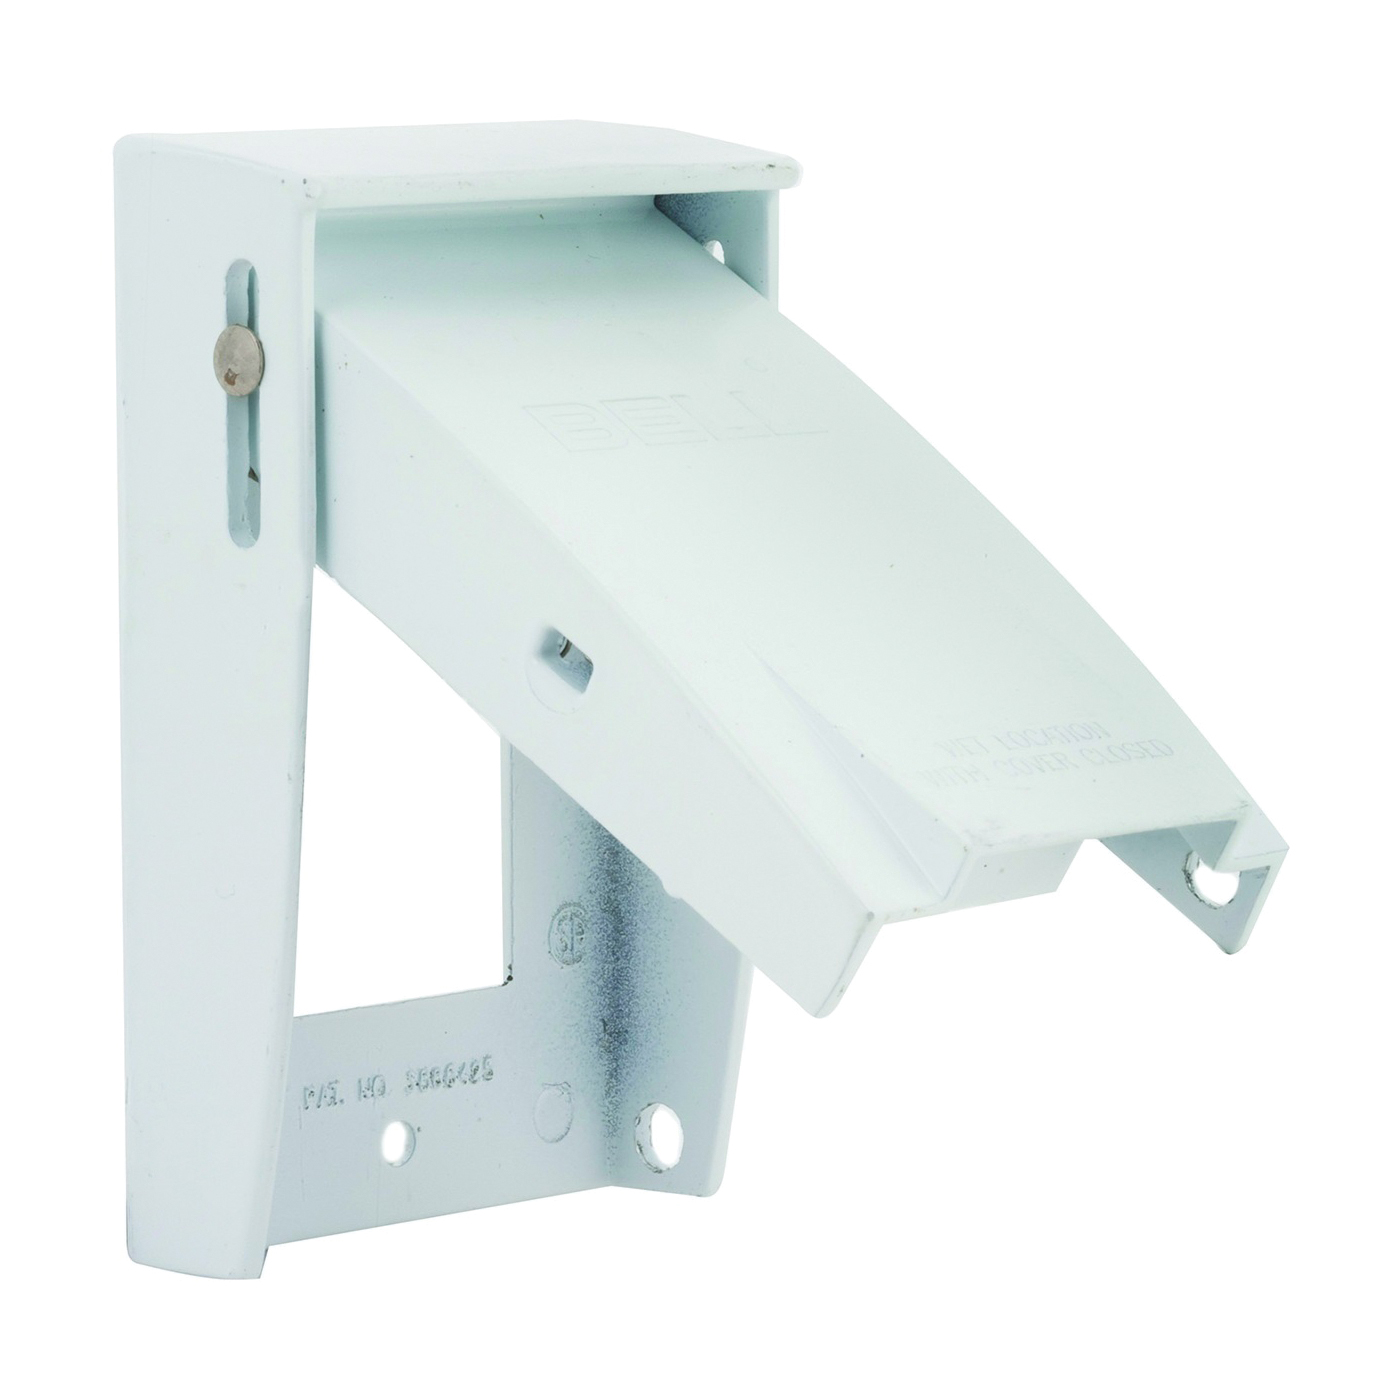 Picture of HUBBELL 5028-6 Cover, 4-1/2 in L, 2-3/4 in W, Aluminum, White, Powder-Coated